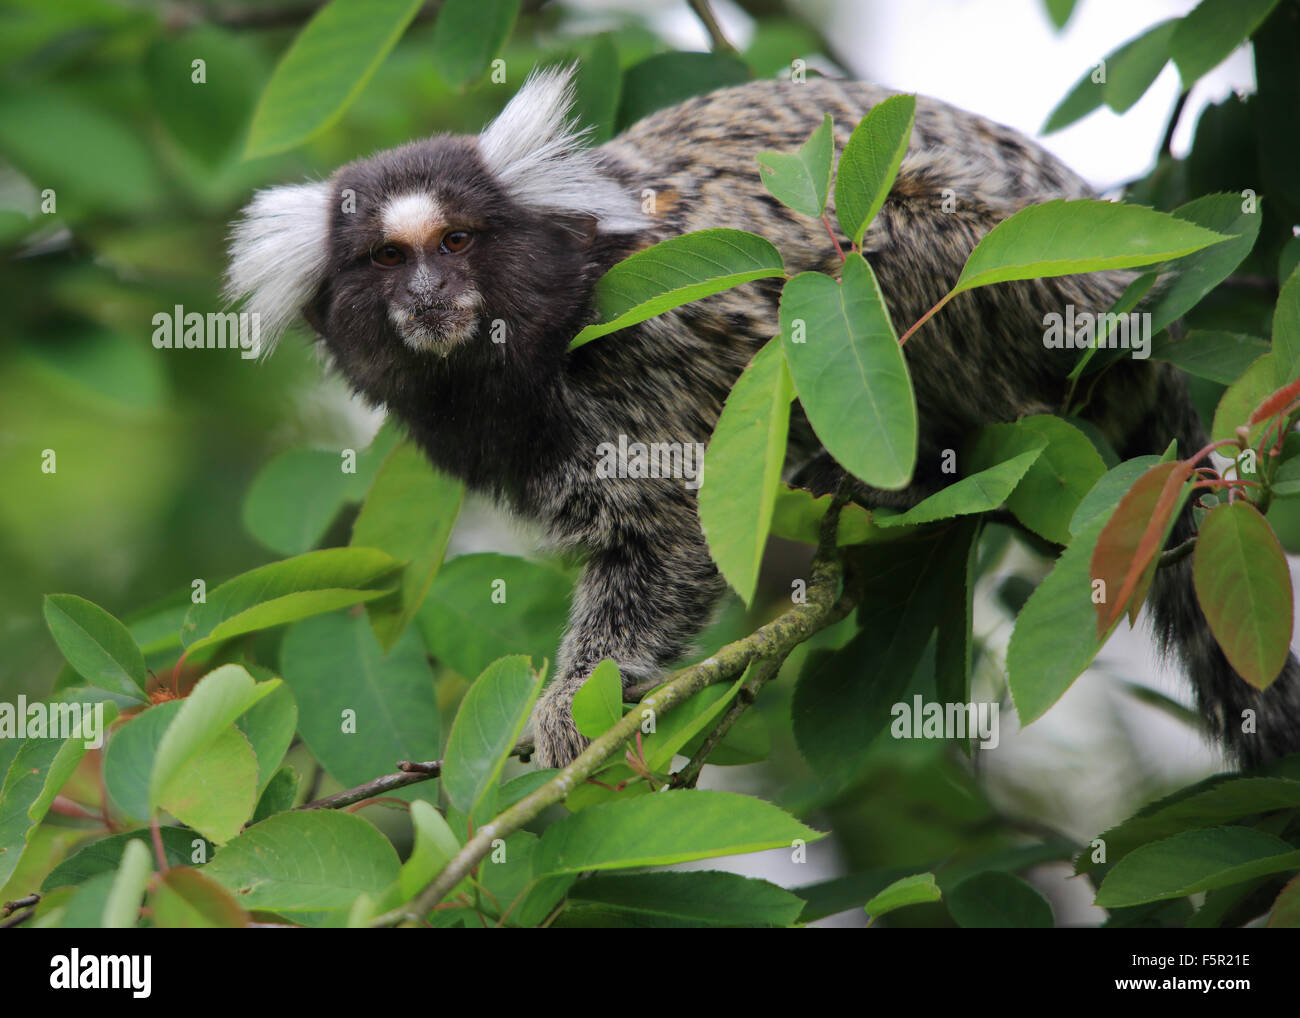 A lovely Common Marmoset, also known simply as Marmoset, sitting in a tree - Stock Image